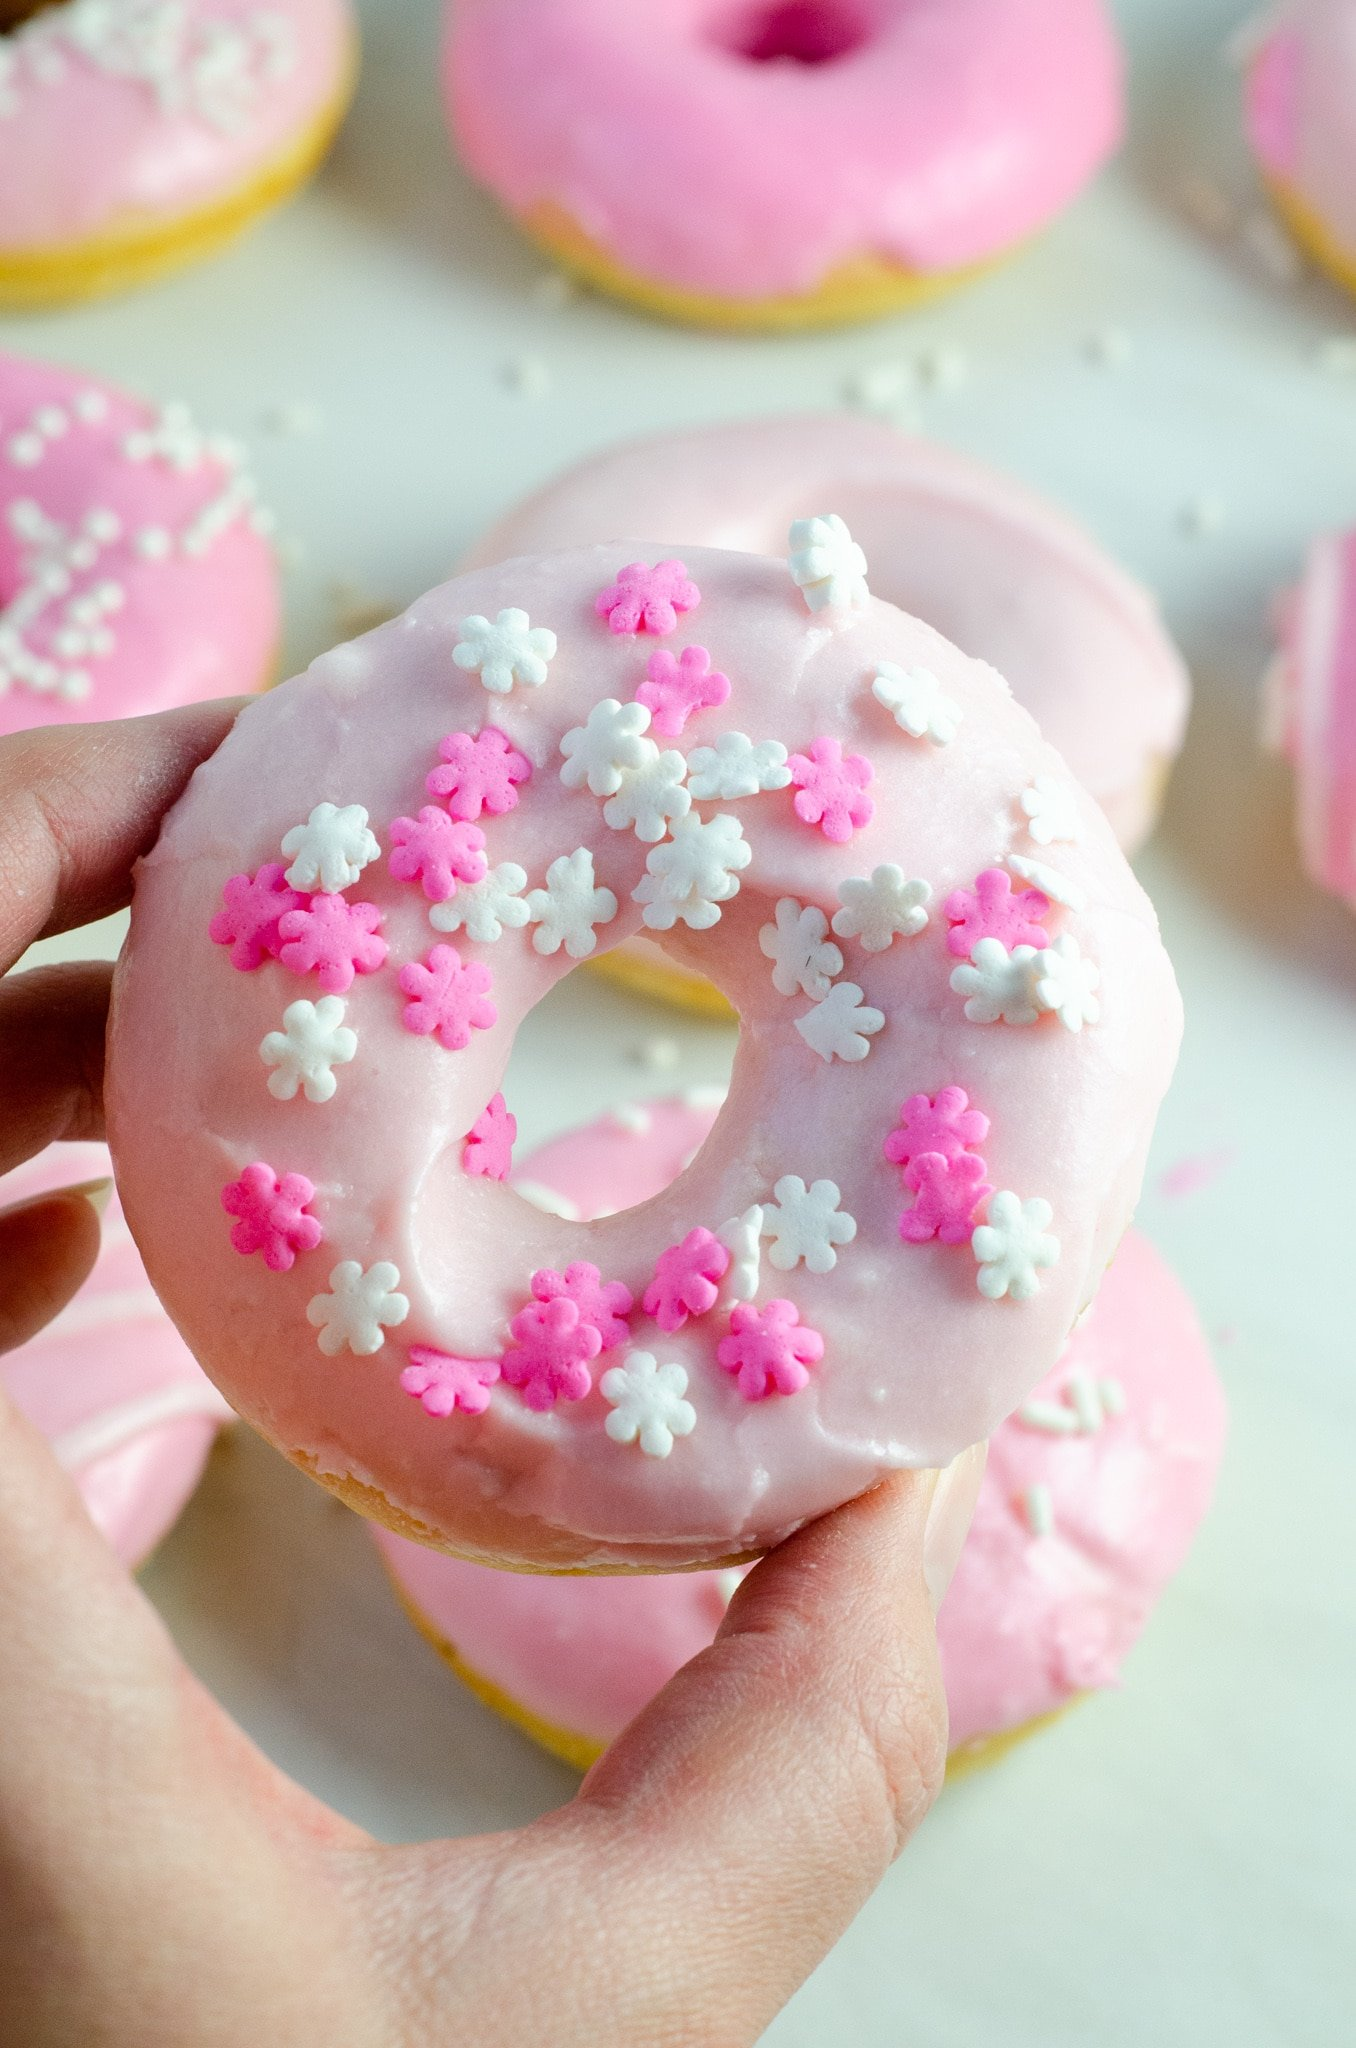 Baked Vanilla Donuts Sprinkles. Baked Vanilla Donuts are perfect for any occasion, Valentine's Day treats or birthday sweets, the possibilities are endless.